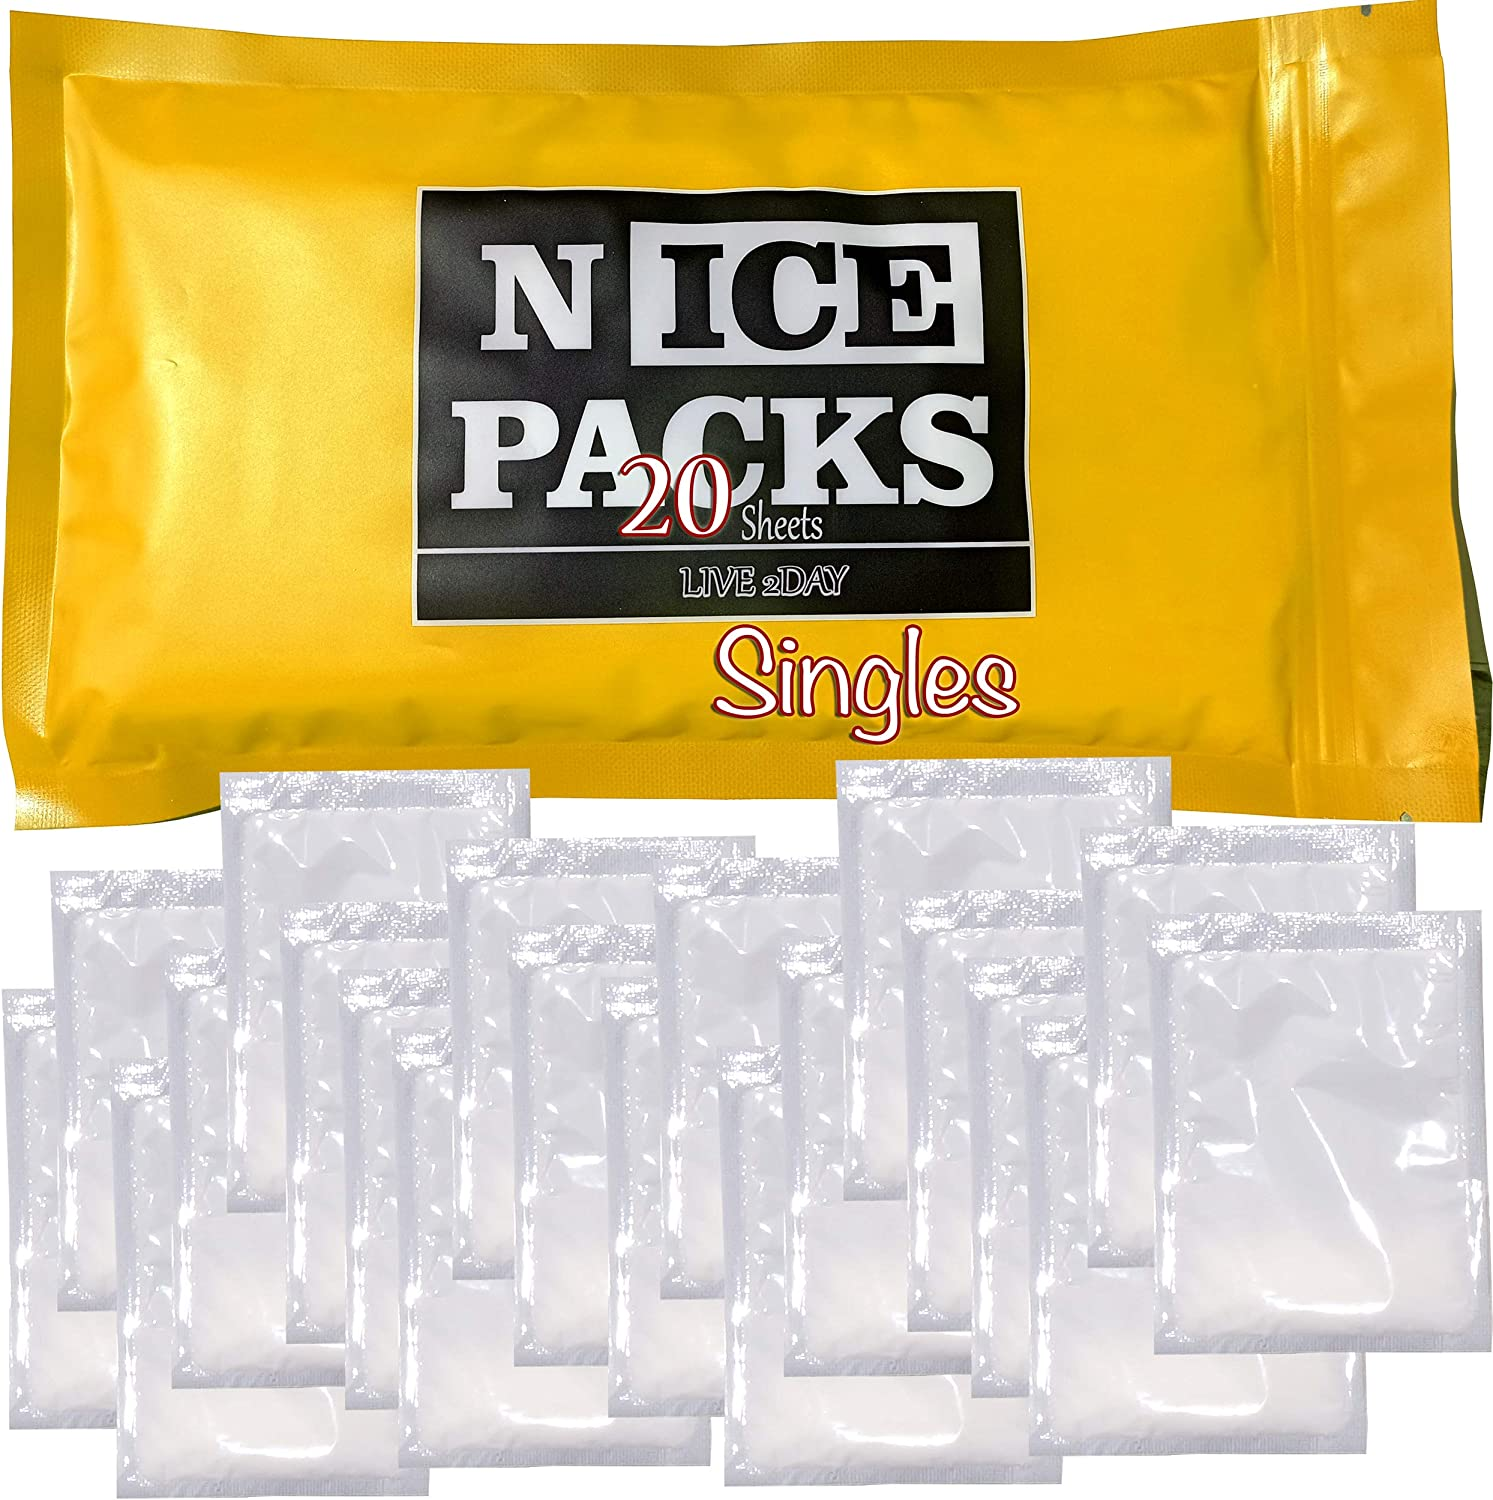 LIVE 2DAY Nice Packs Dry Ice for Coolers - Lunch Box Ice Packs - Dry Ice for Shipping Frozen Food - Ice Packs for Lunch Bags - Reusable Ice Packs - 20 Singles, Long Lasting, Flexible